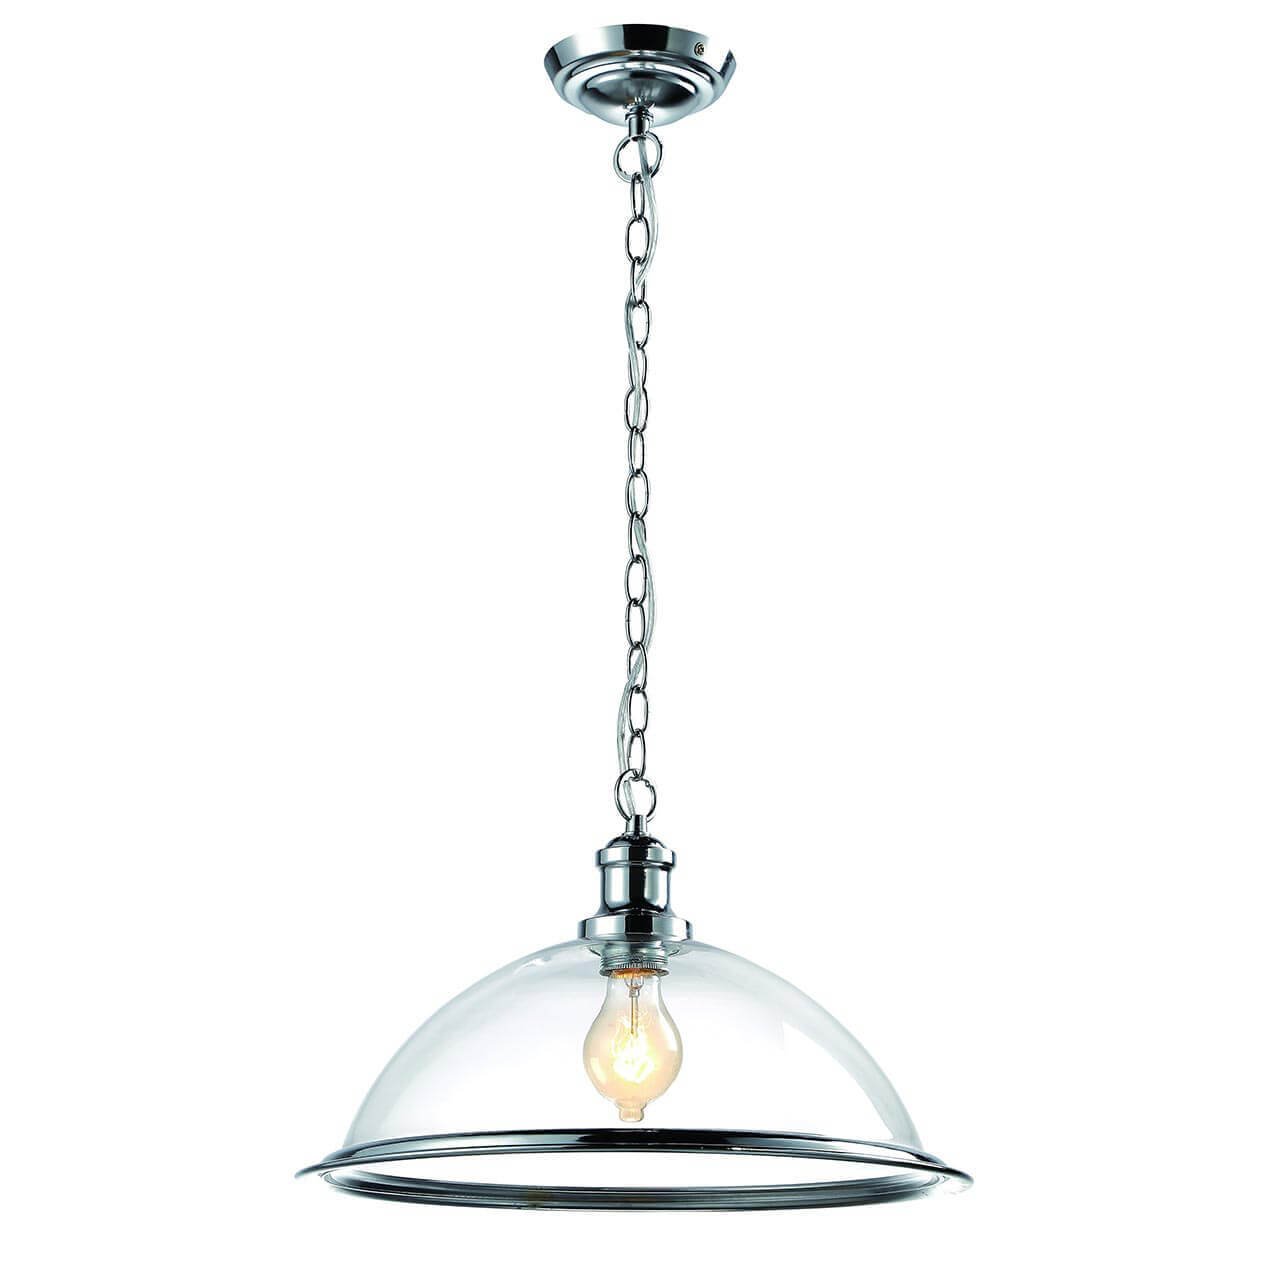 Светильник Arte Lamp A9273SP-1CC Oglio Chrome